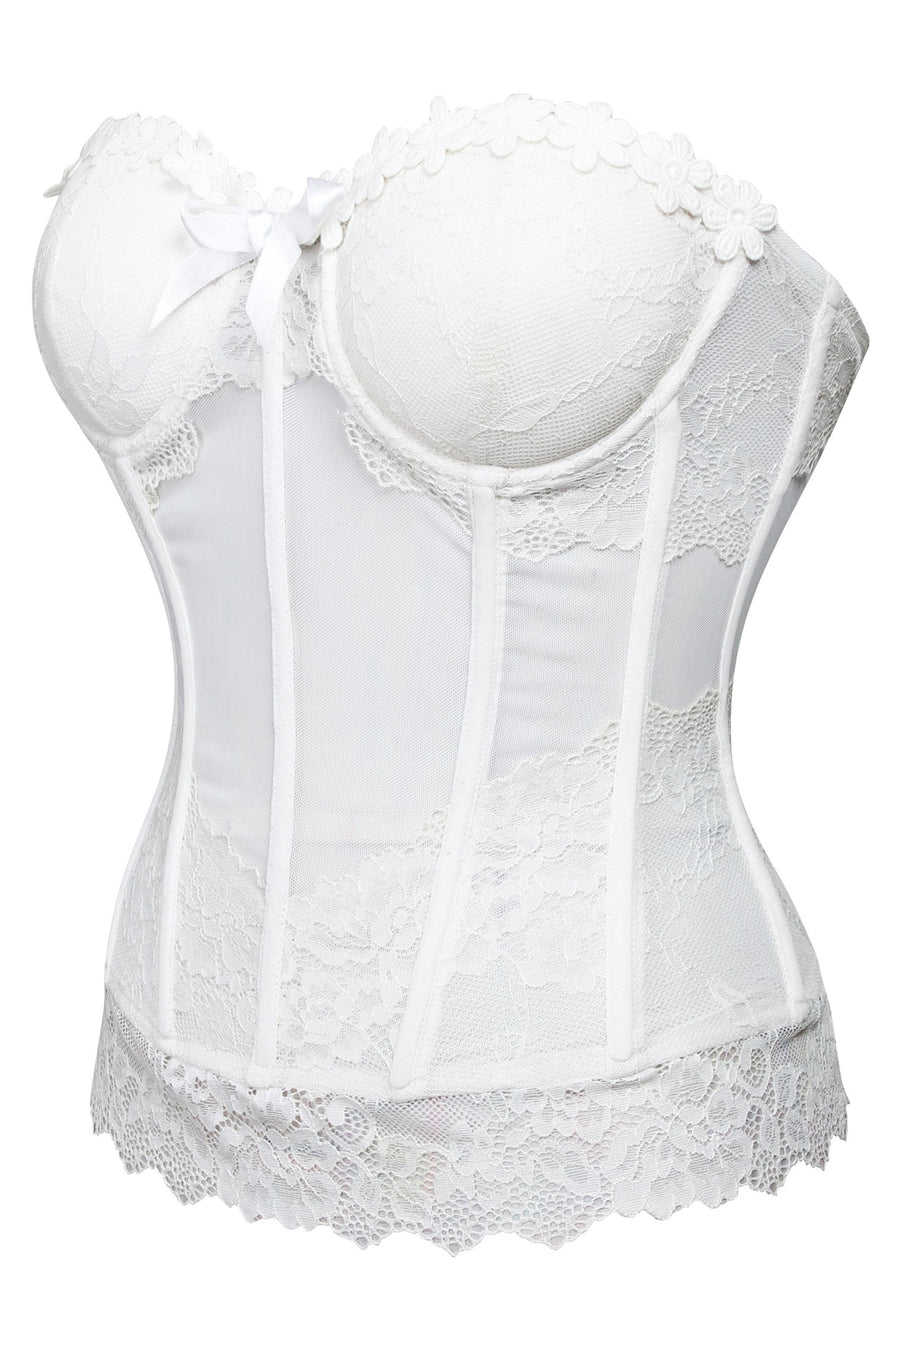 Low Back Bridal Corset Top